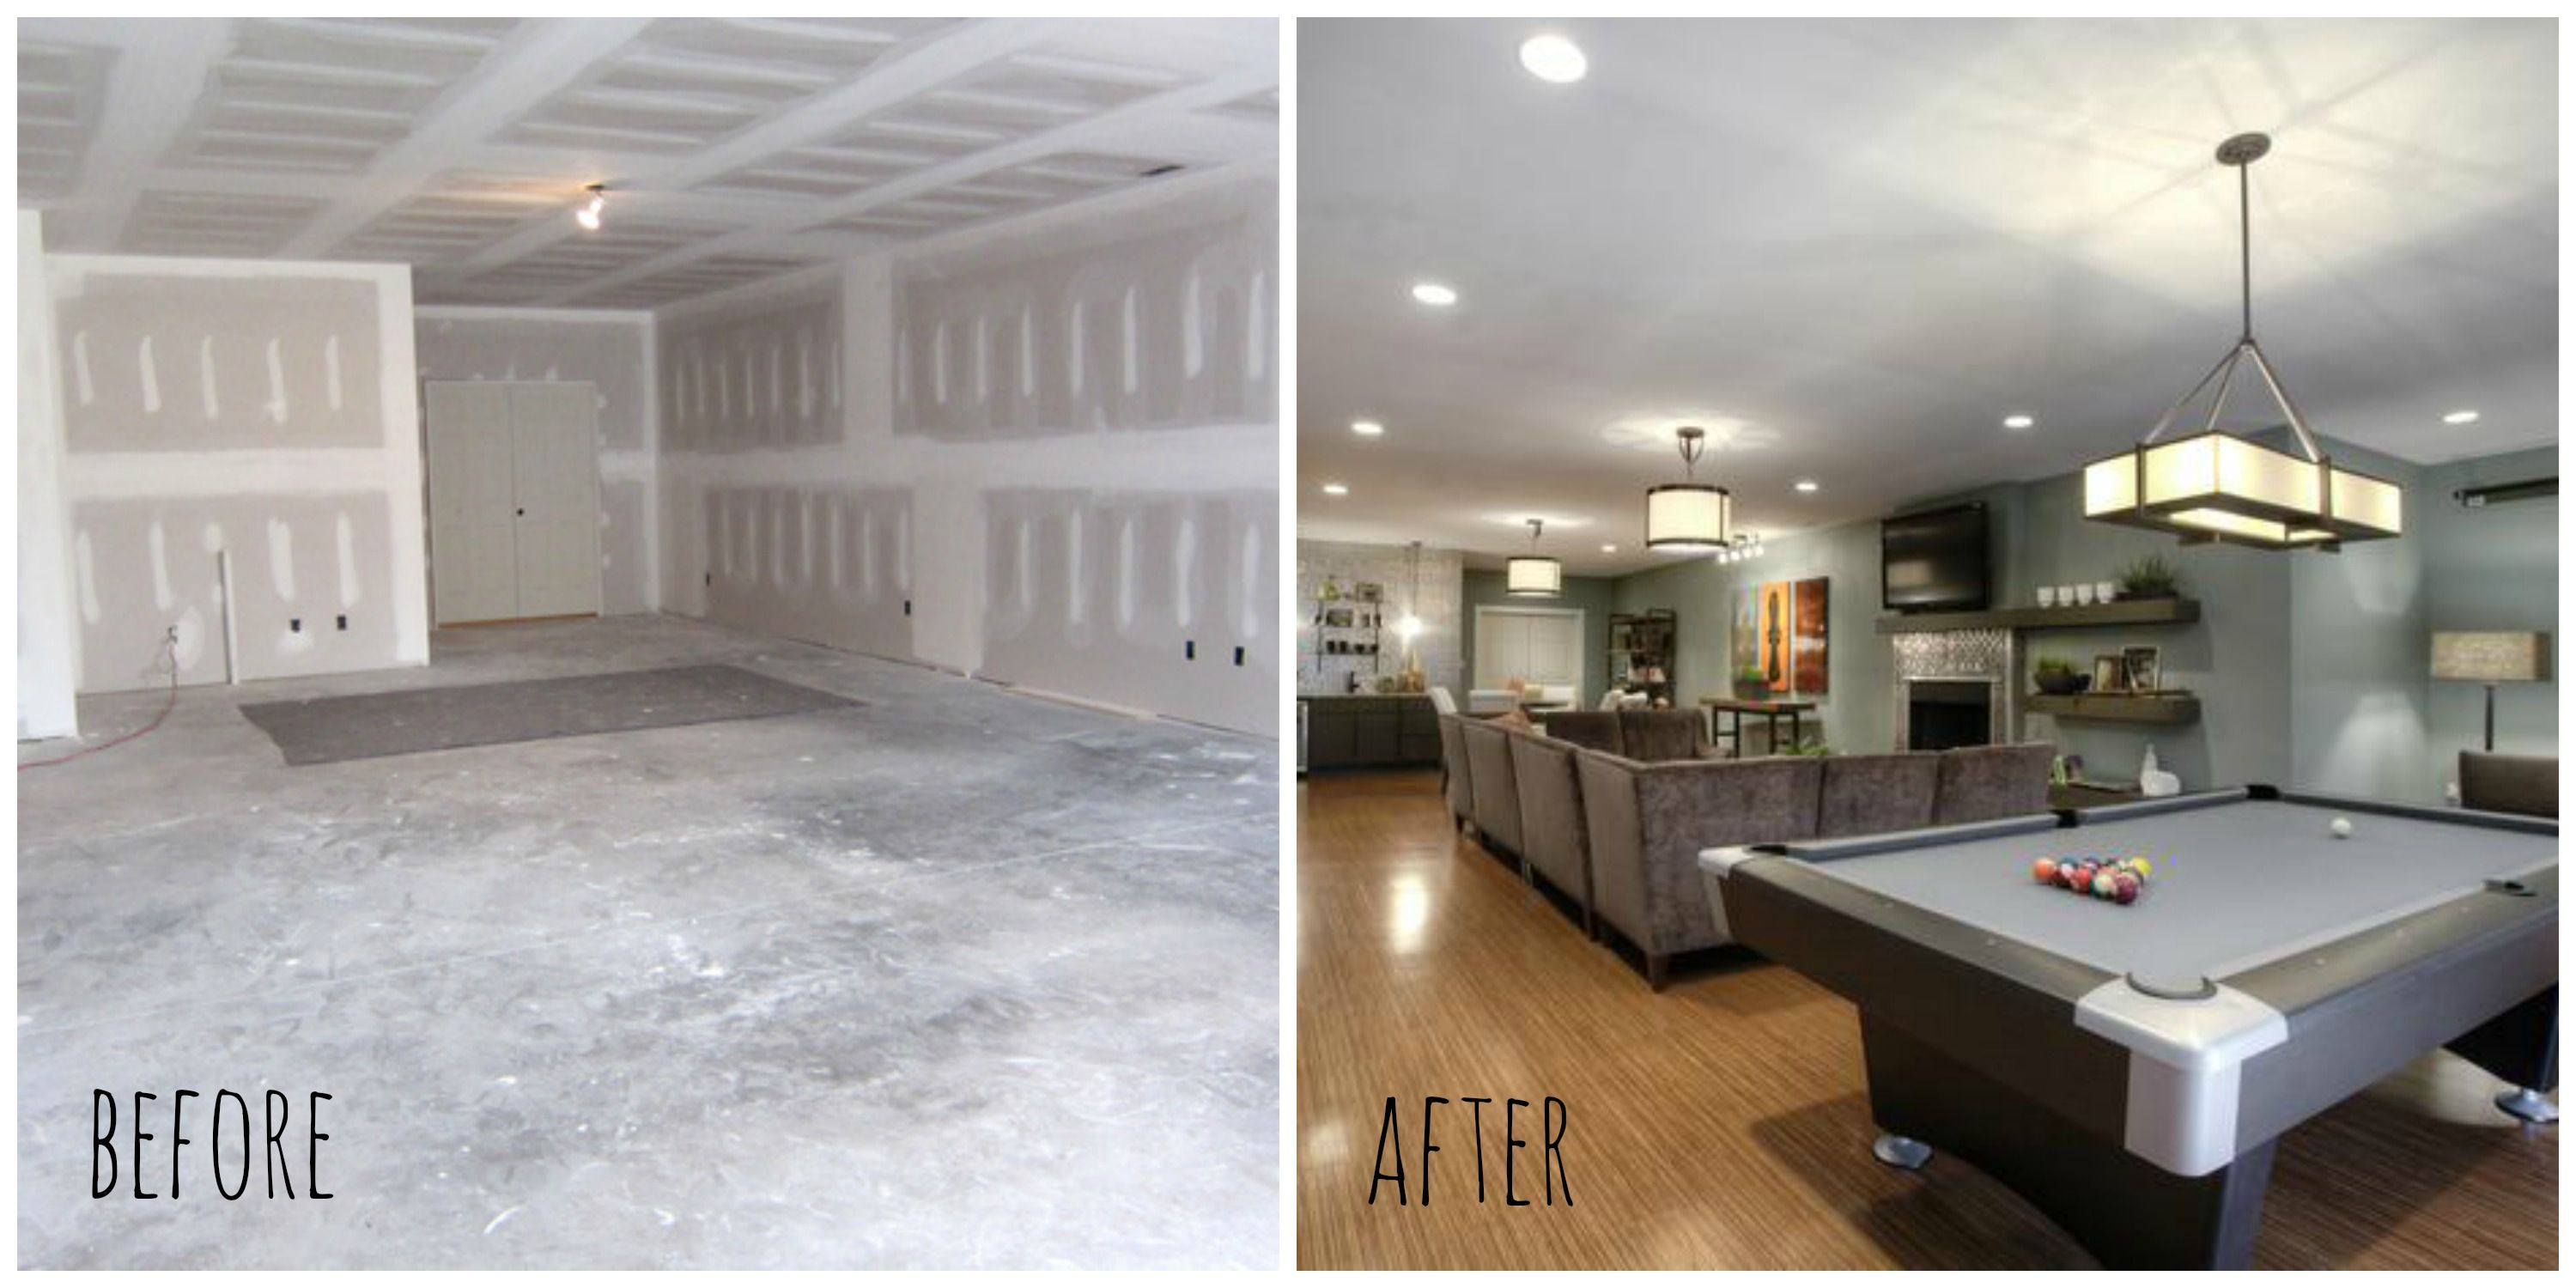 Basement renovation before after before after - Basement ideas for small spaces pict ...